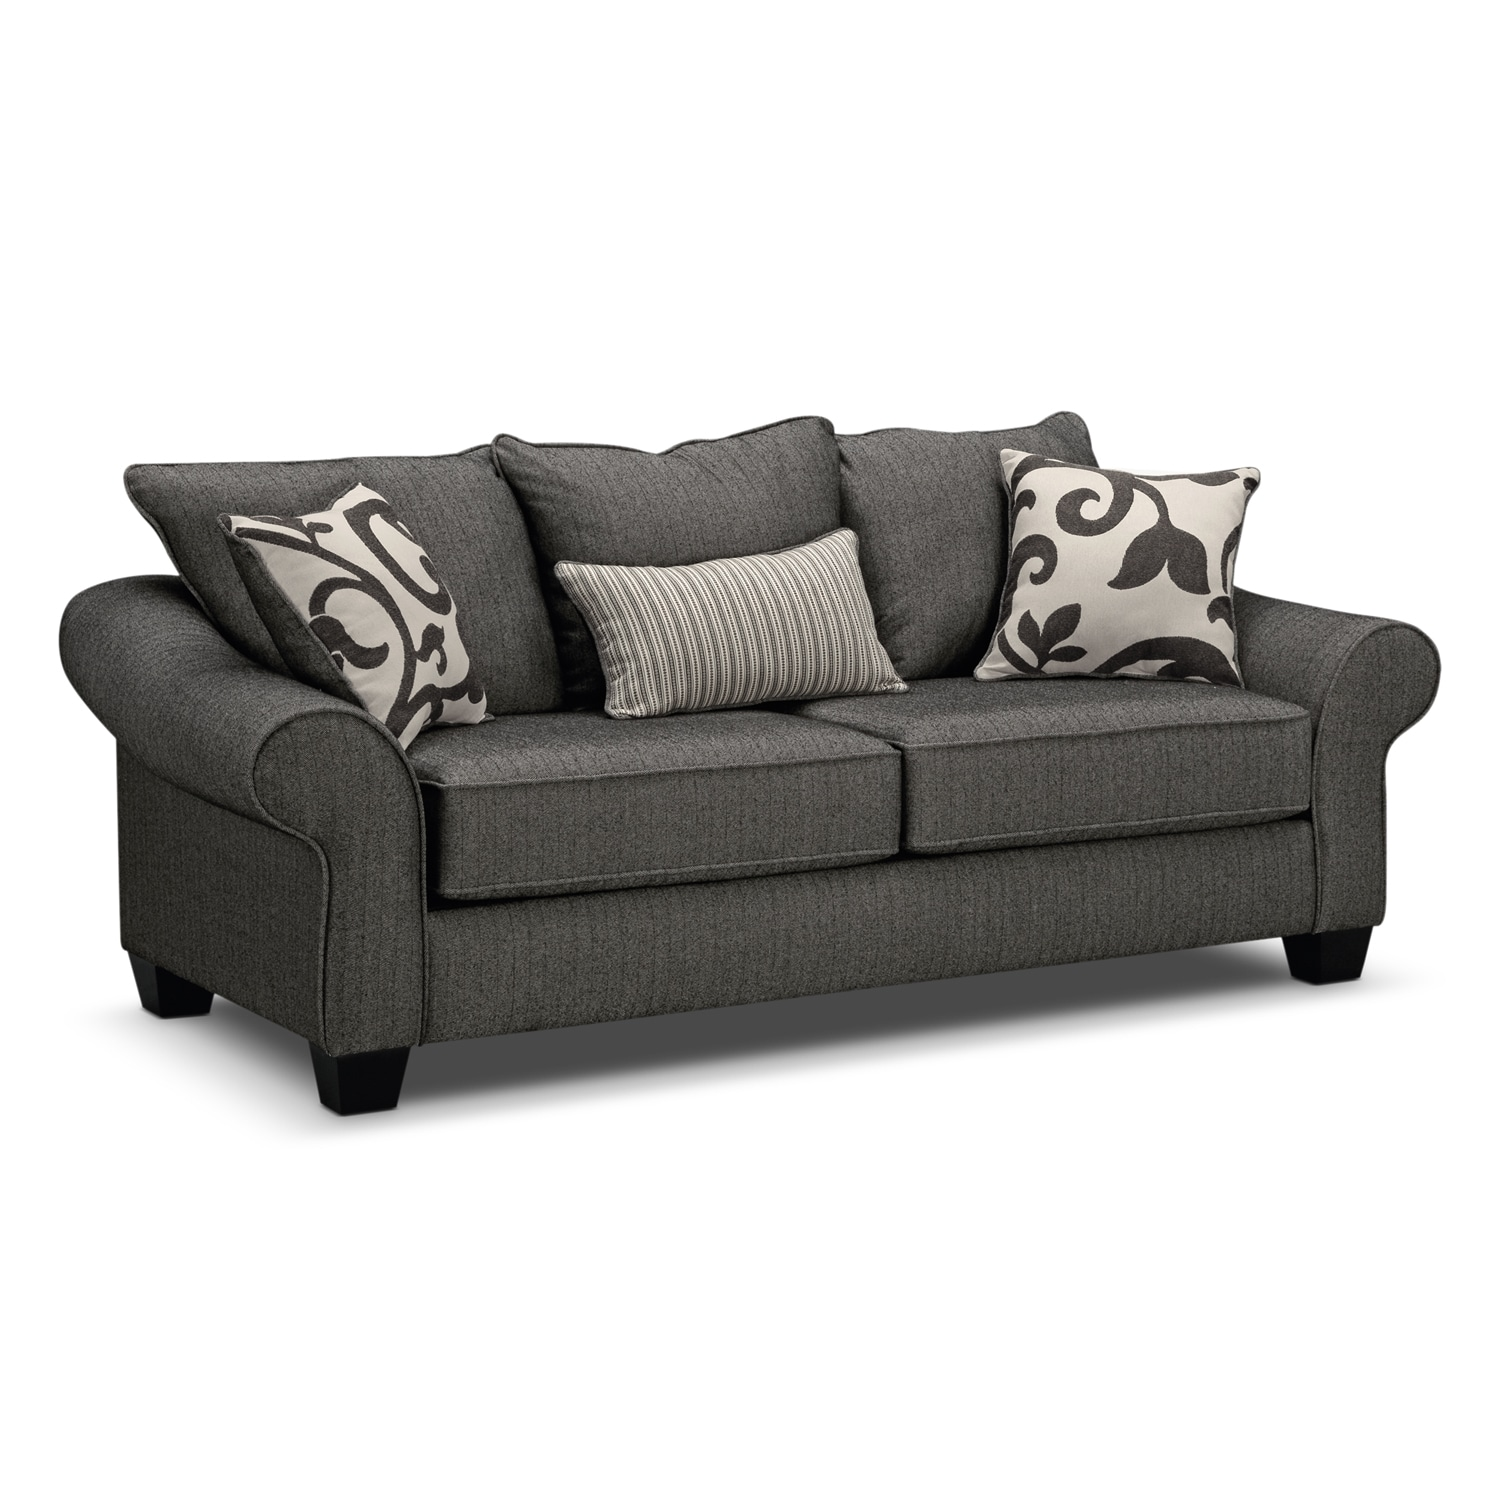 Simplicity sofas for sale - Colette Full Innerspring Sleeper Sofa Gray